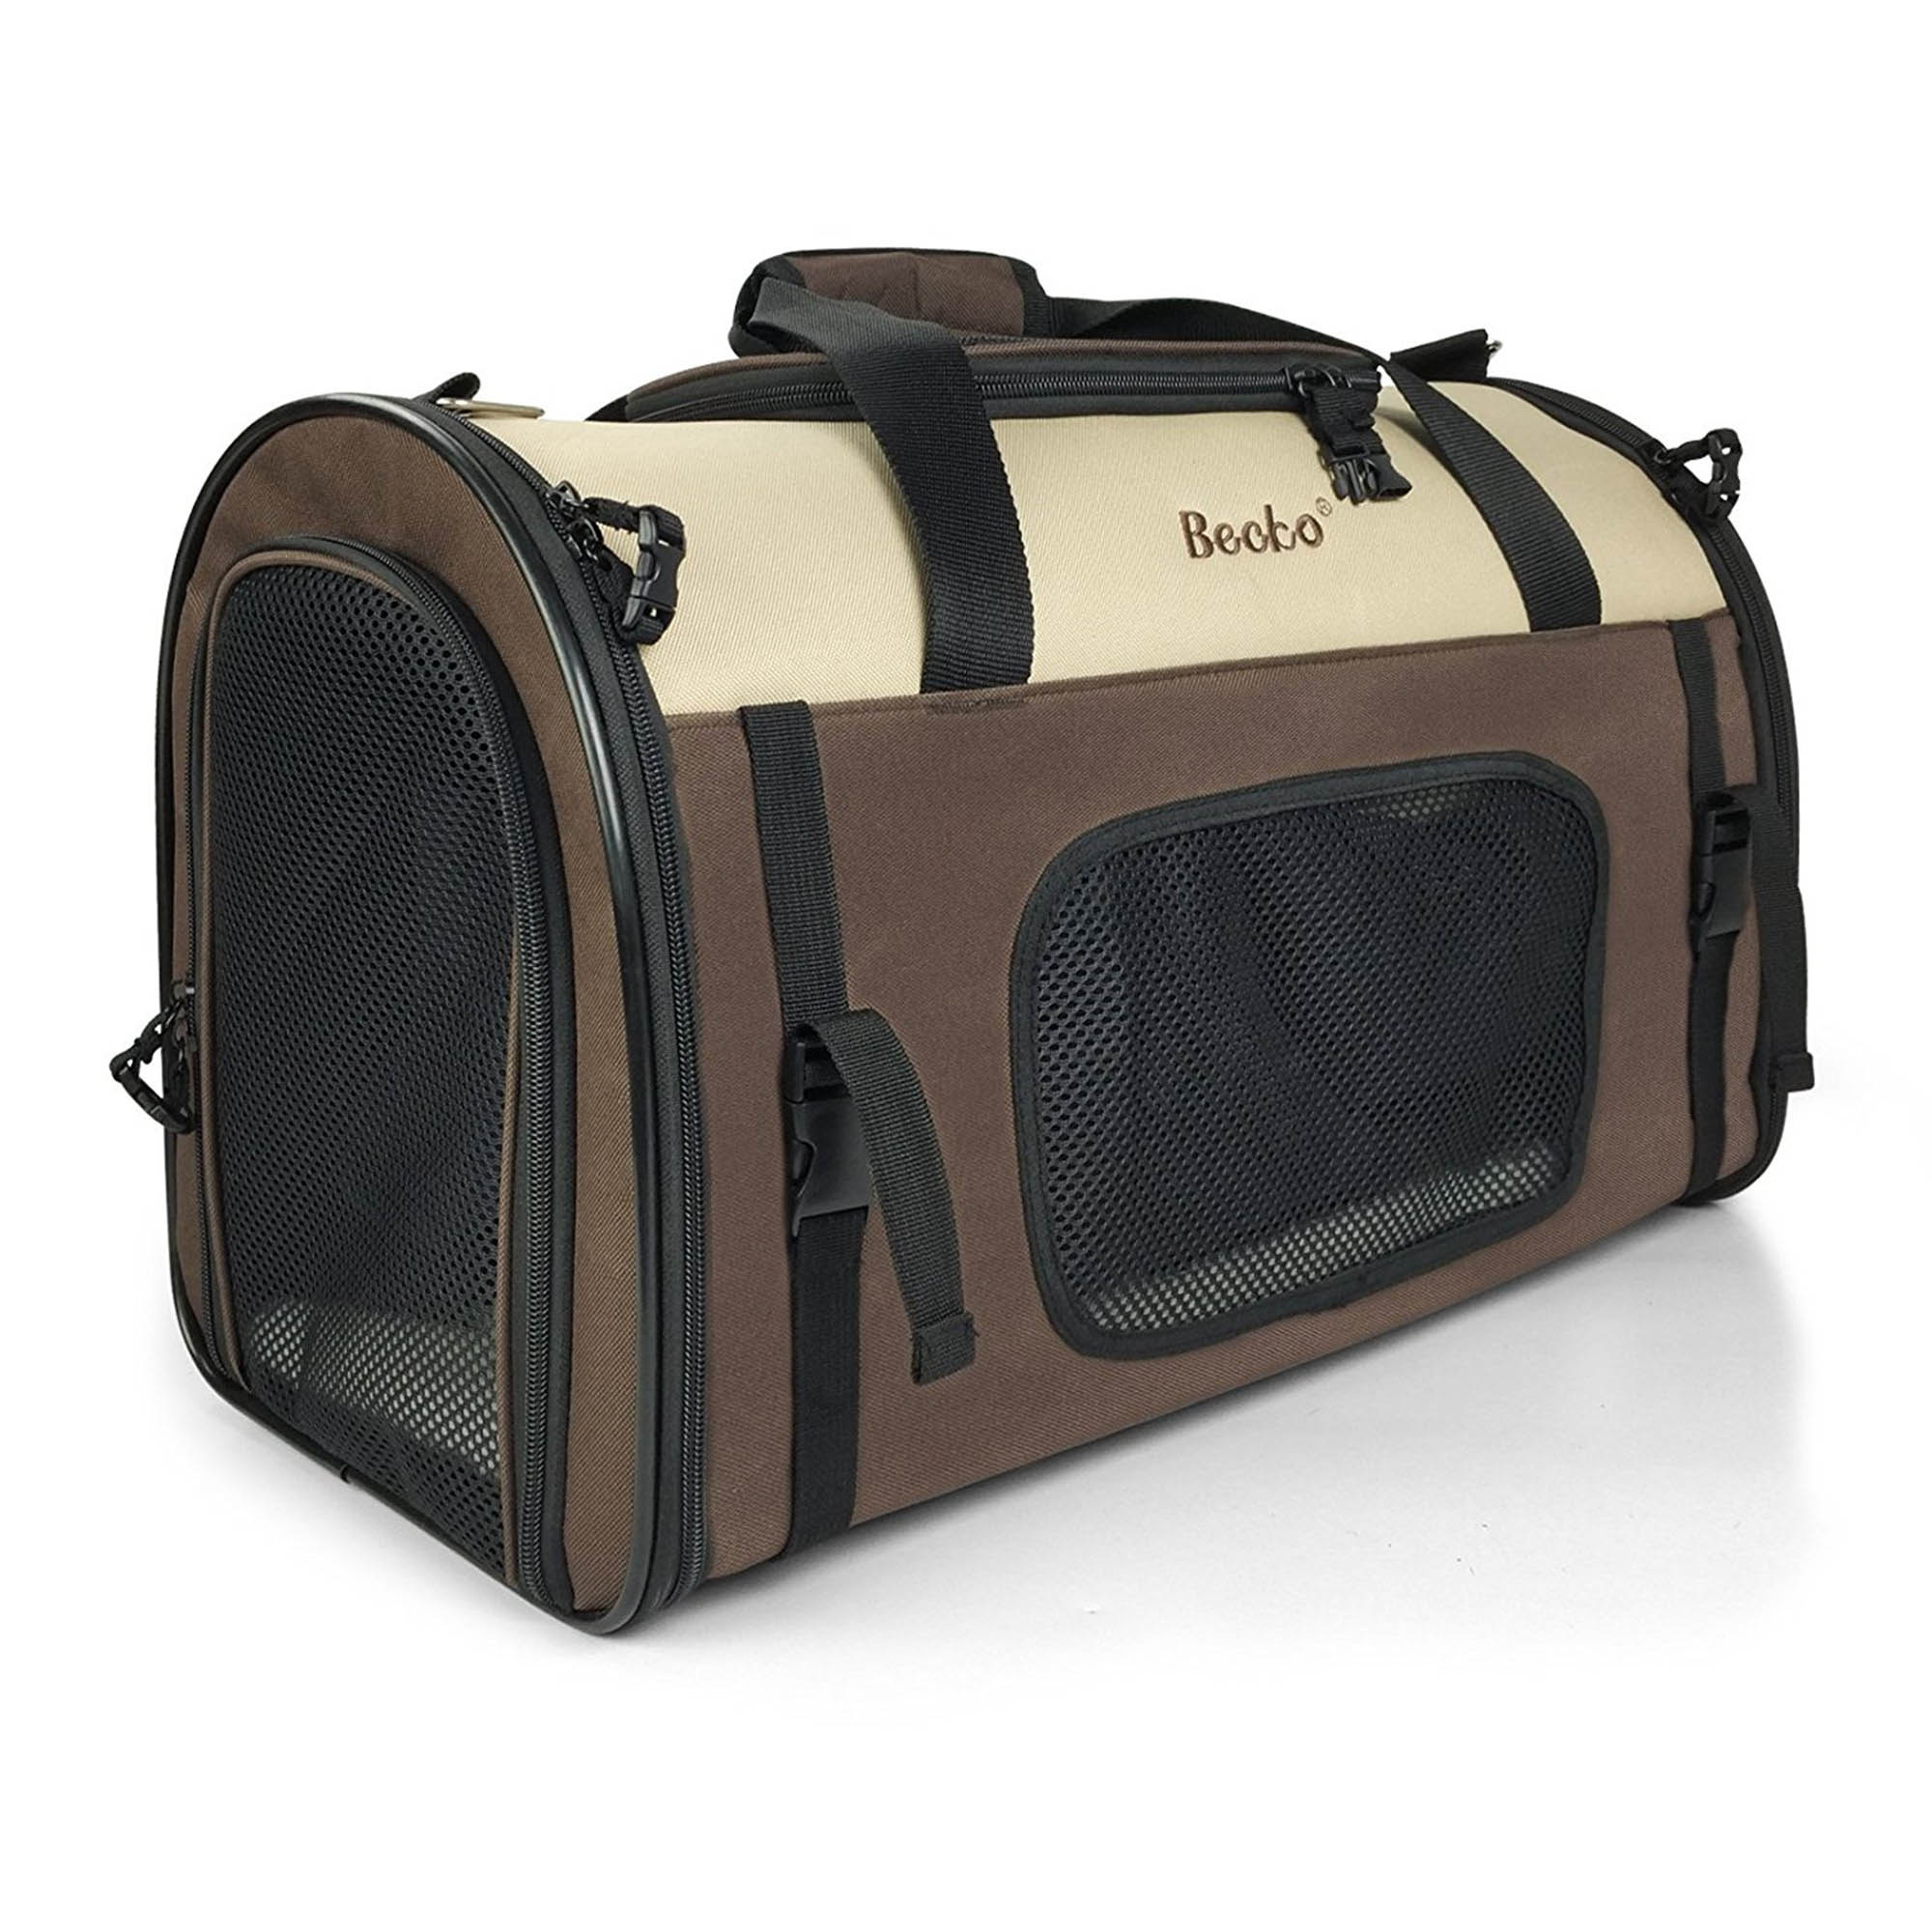 Becko Brown & Beige Expandable Pet Carrier with Padding